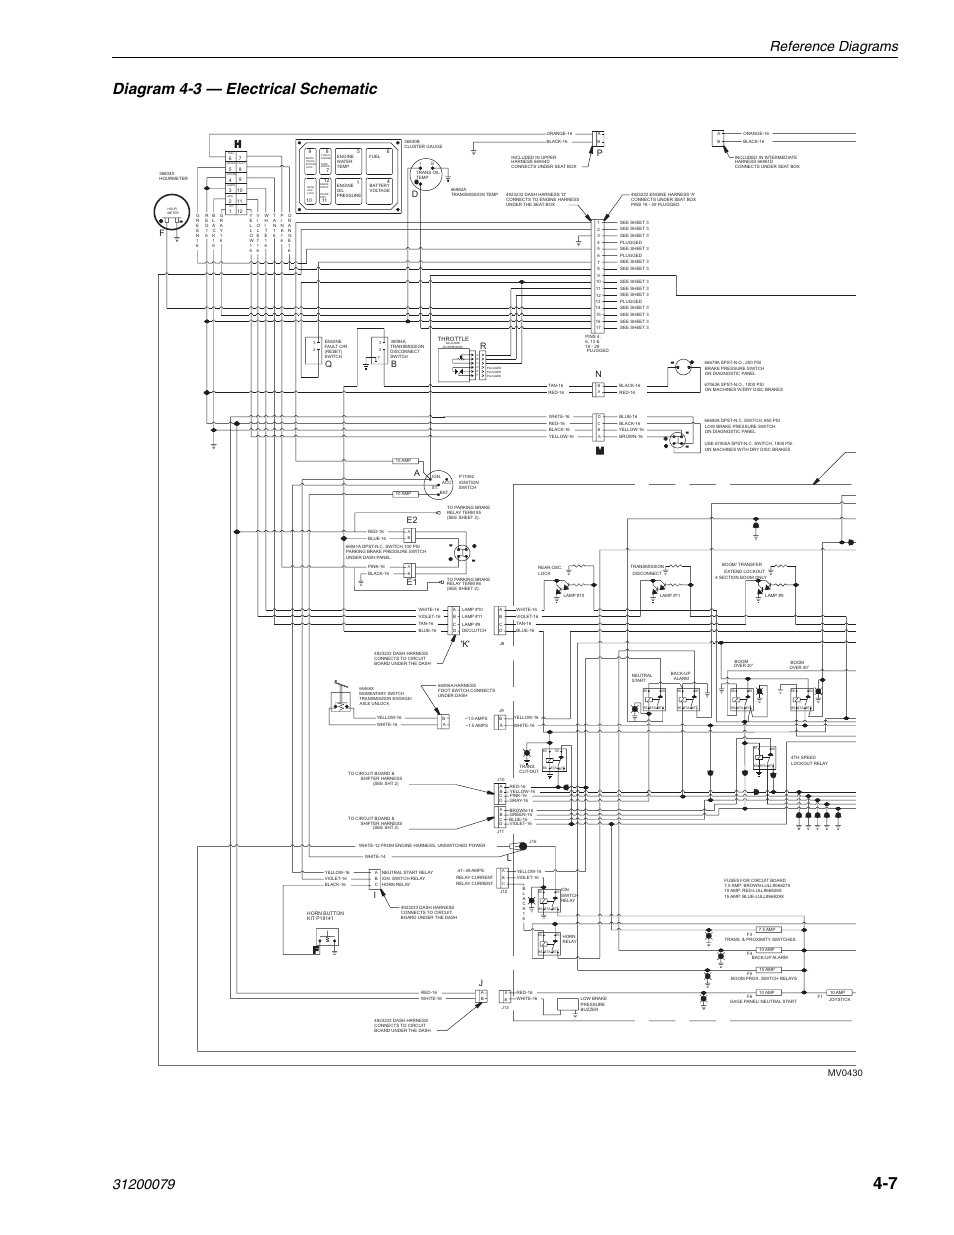 Lull Proximity Switch Wiring Diagram Will Be A Thing 4 3 Electrical Schematic Mv0430 Pa E2 E1 K 1044c Rh Manualsdir Com 2wire Sensor Circuit